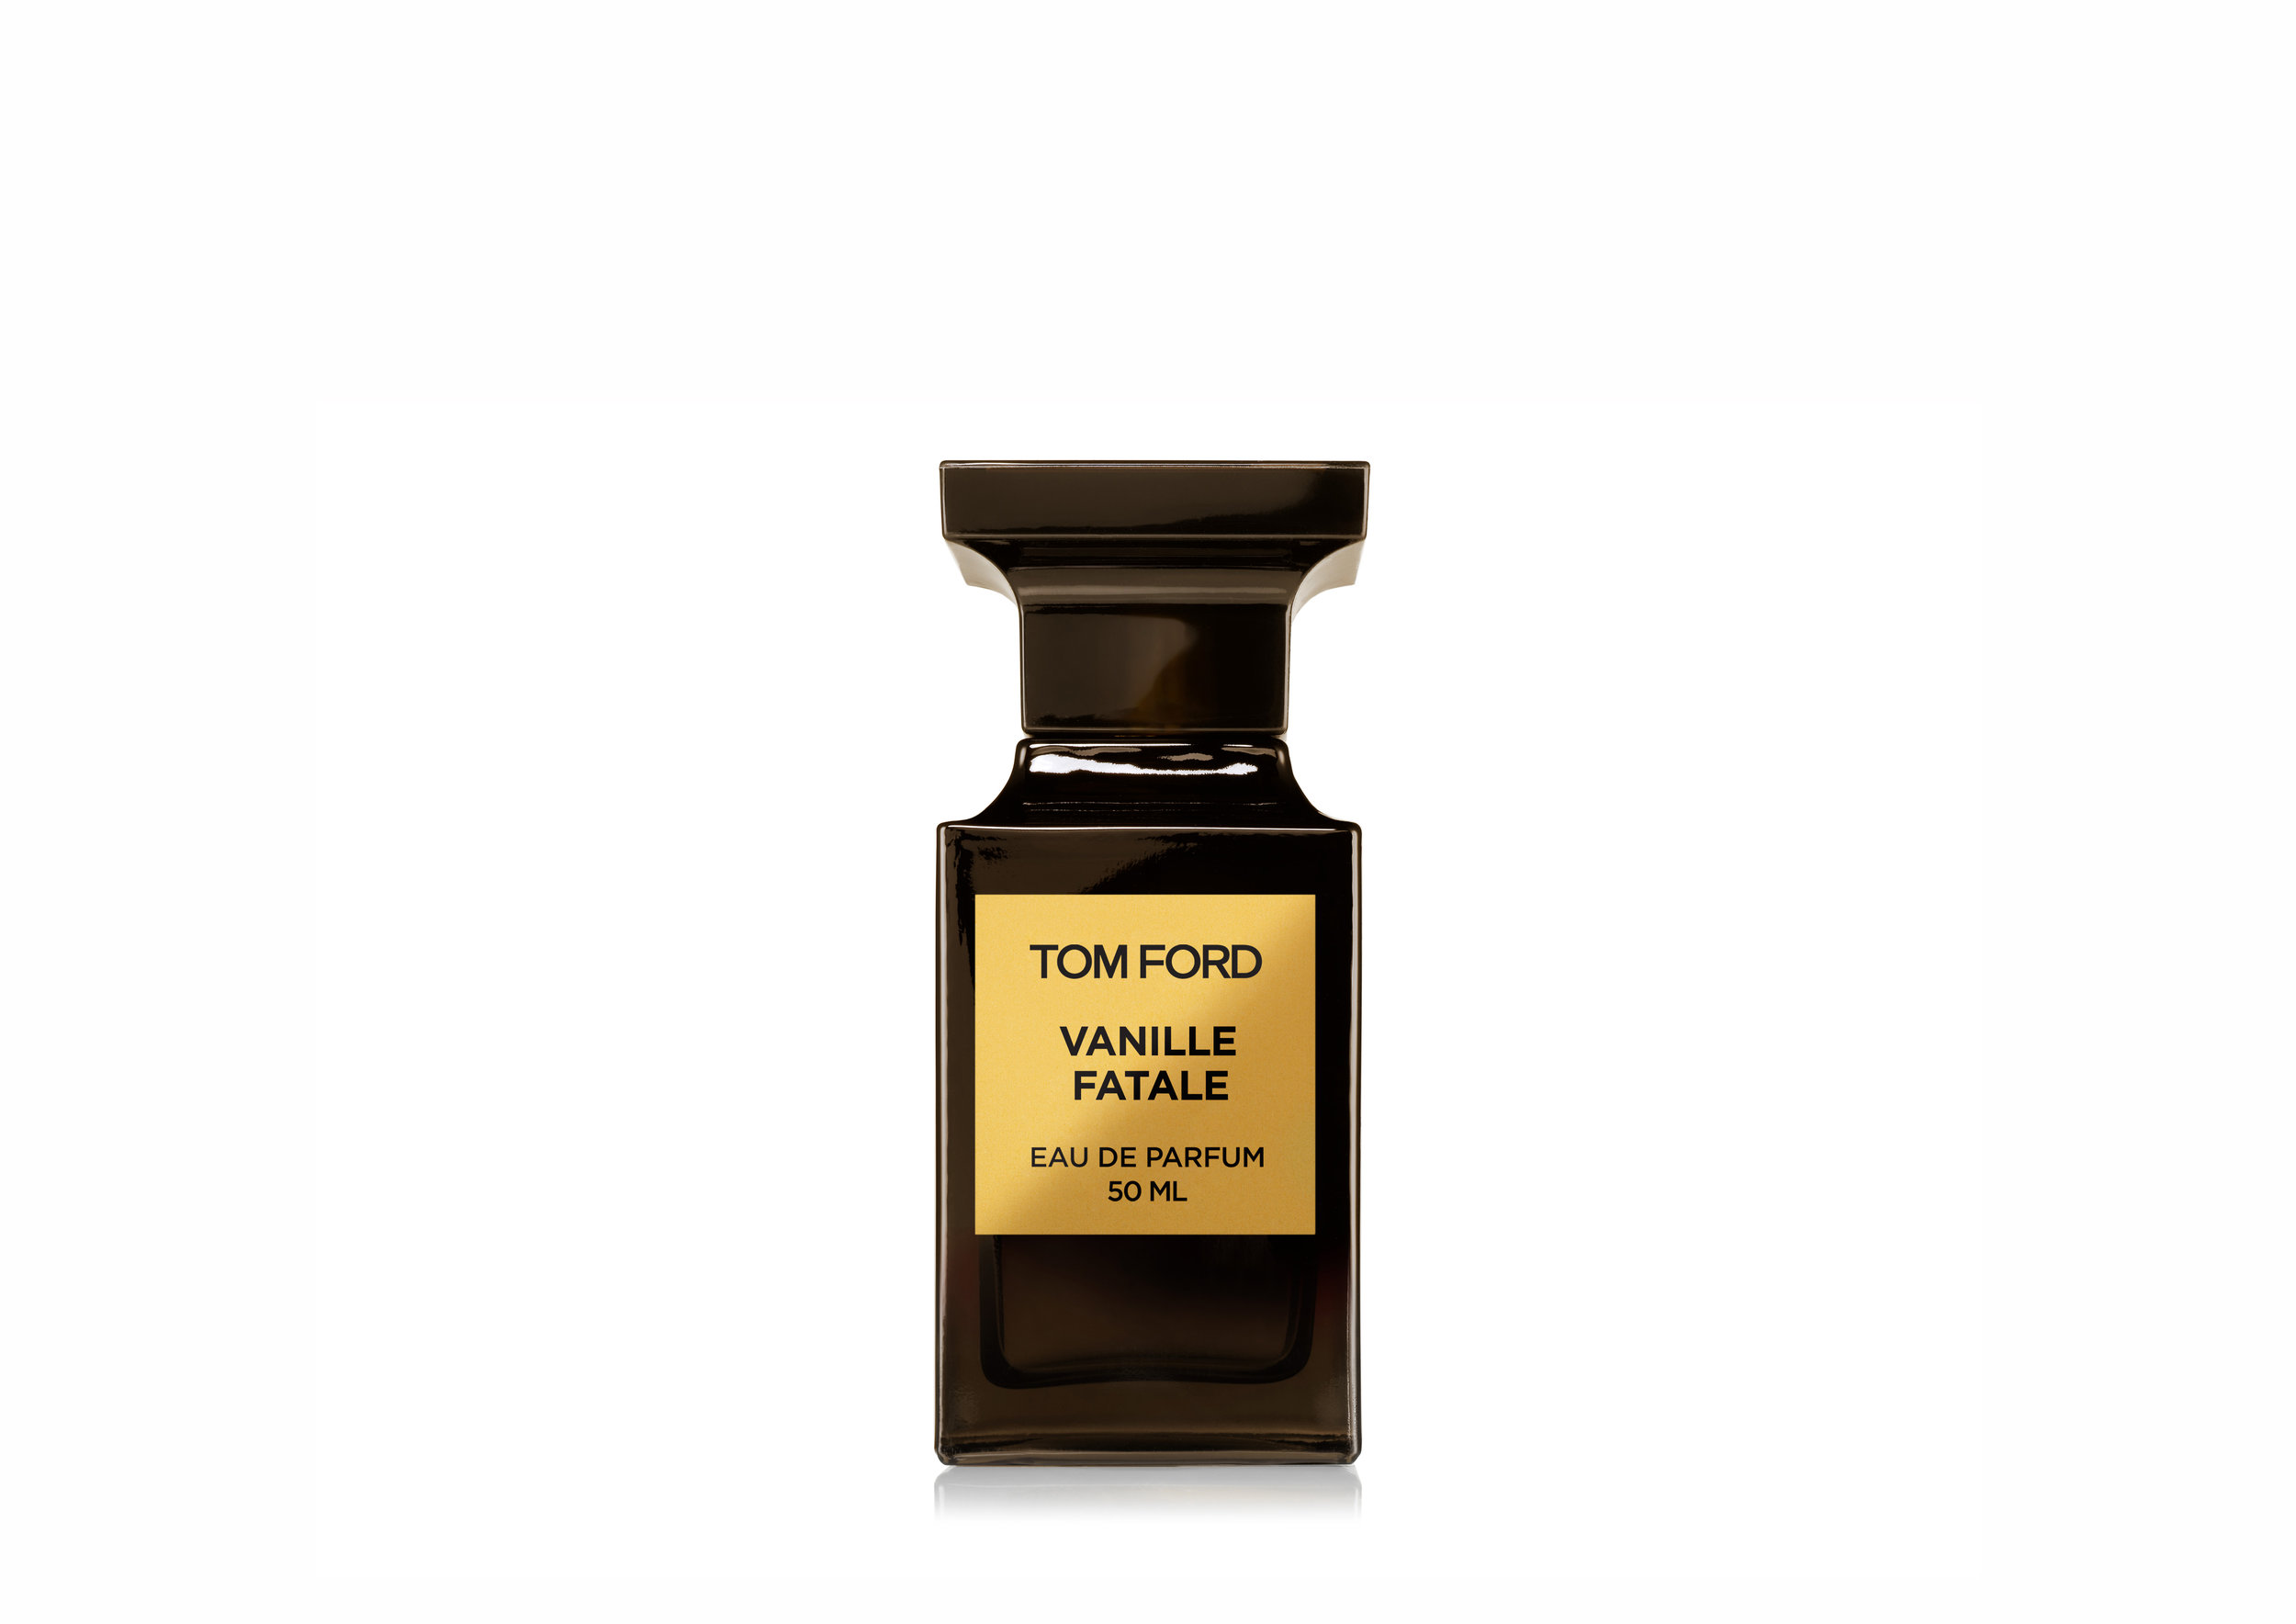 Tom Ford Vanilla Fatale Fragrance